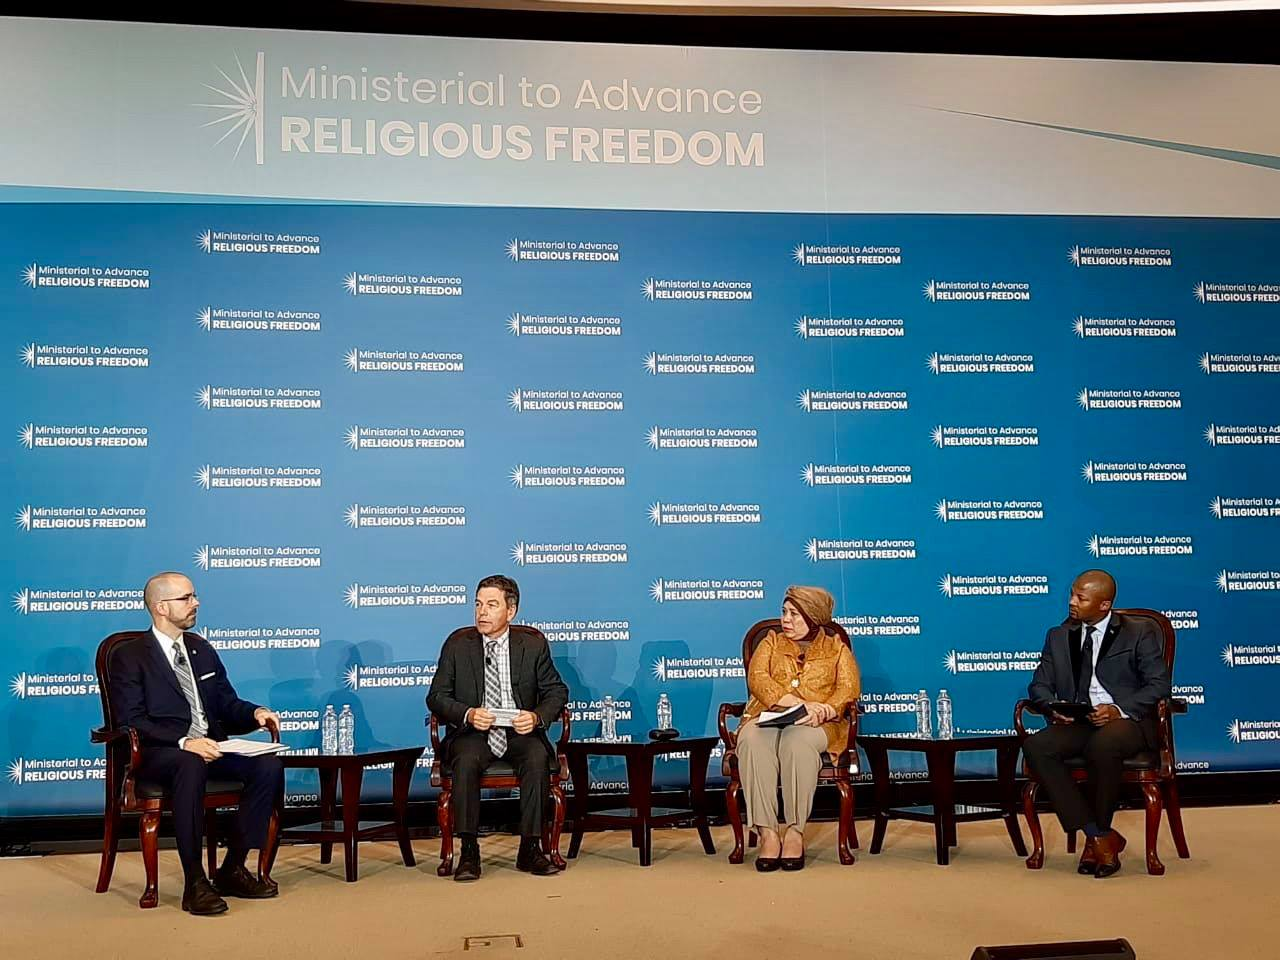 IPPFoRB network parliamentarians David Anderson (also the Chair of the IPPFoRB Steering Committee) from Canada, Lena Maryana Mukti from Indonesia and Nqabayomzi Kwankwa (also the Chair of the AfriPAHR Steering Committee) from South Africa together with Knox Thames, U.S. State Dept Special Advisor for Religious Minorities in a panel at the 2019 US Ministerial.